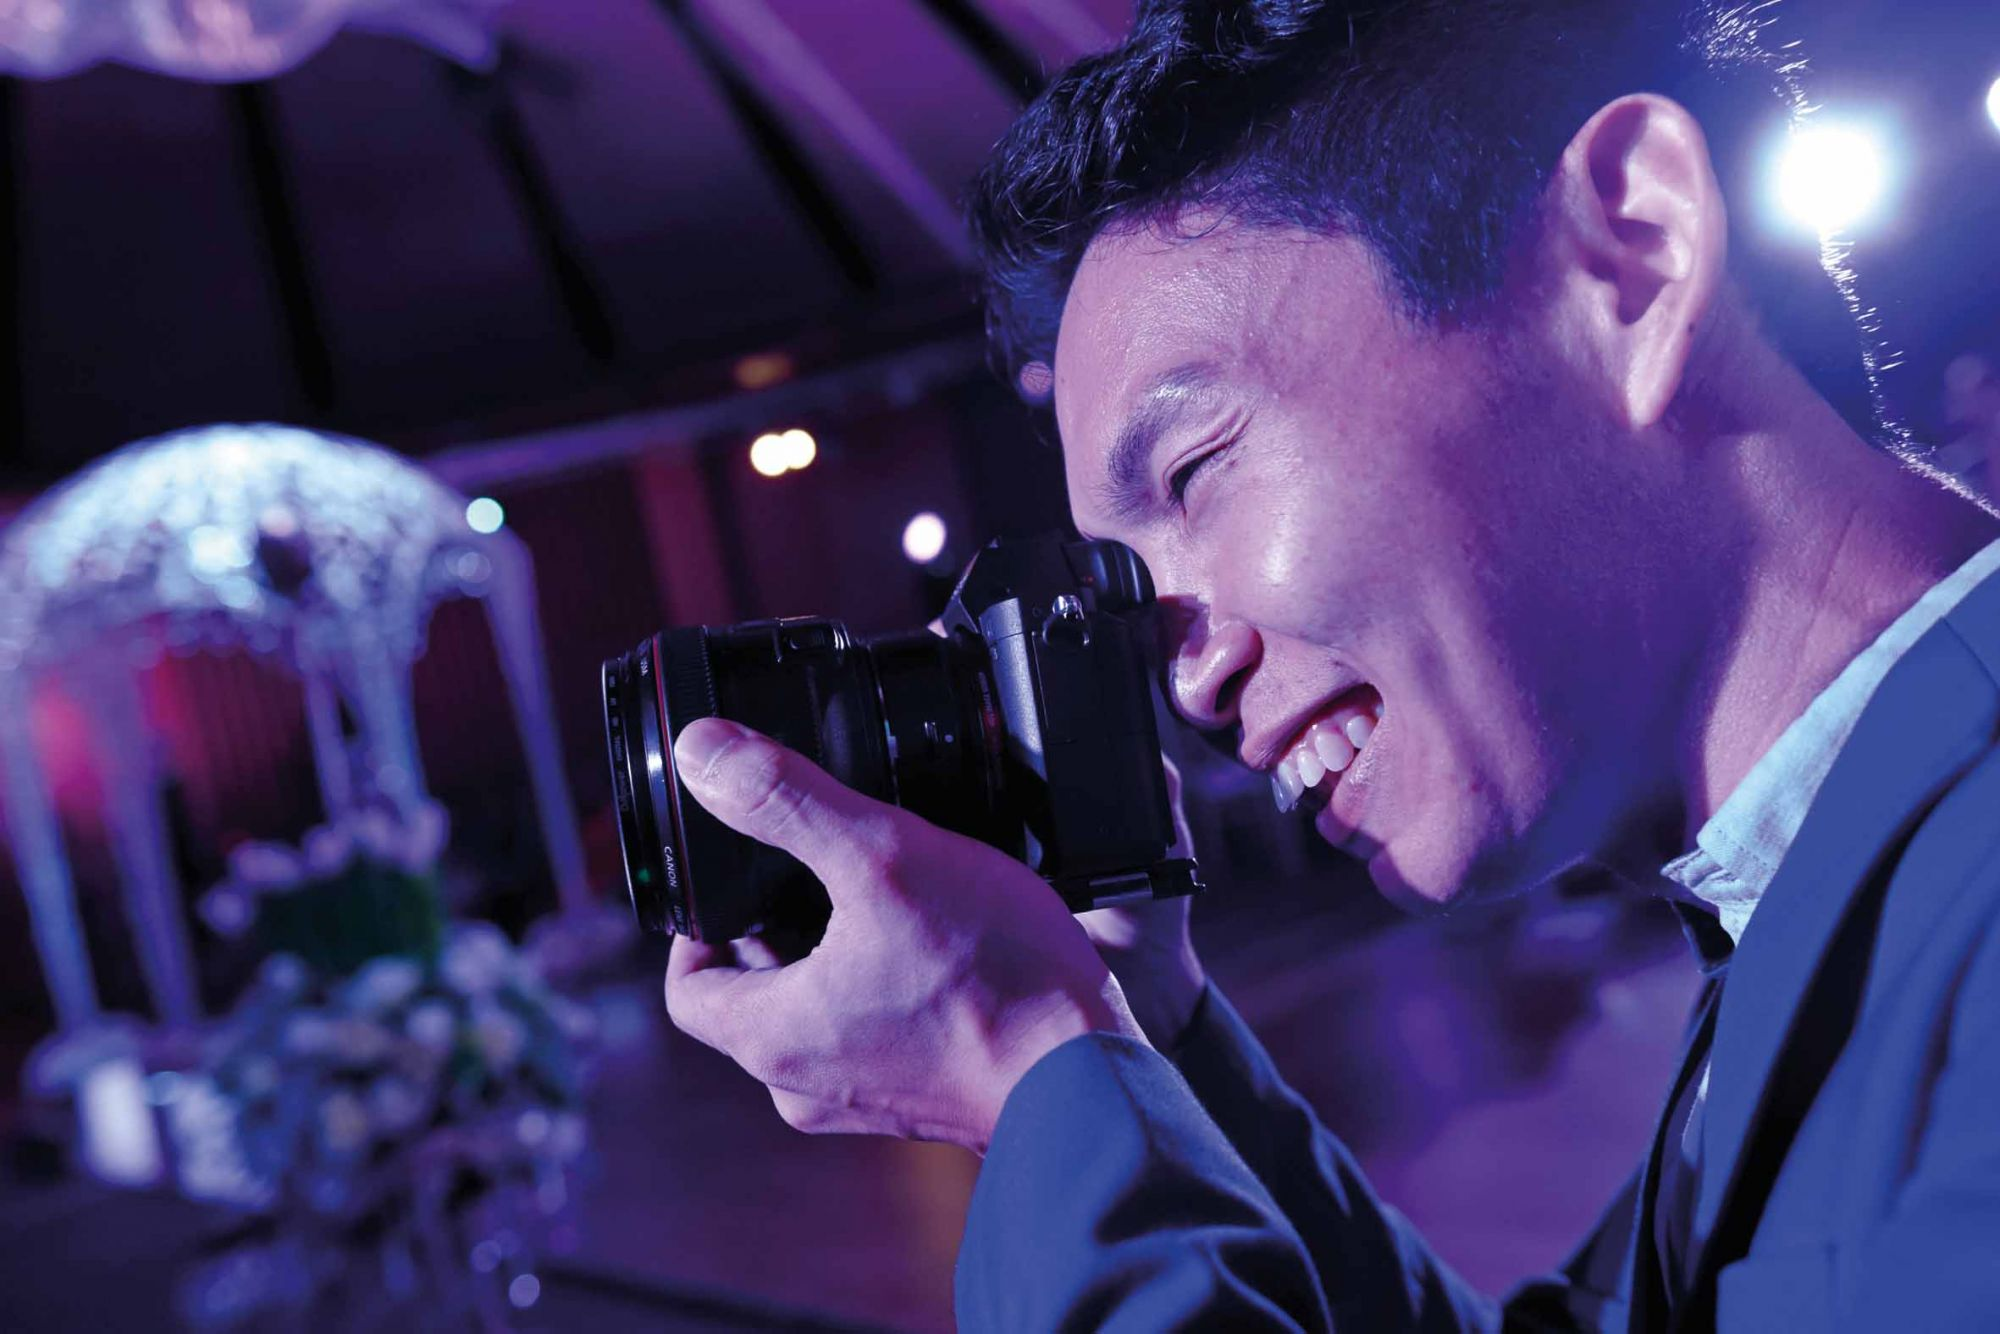 Ask The Expert: Who Owns The Copyright To My Wedding Video?